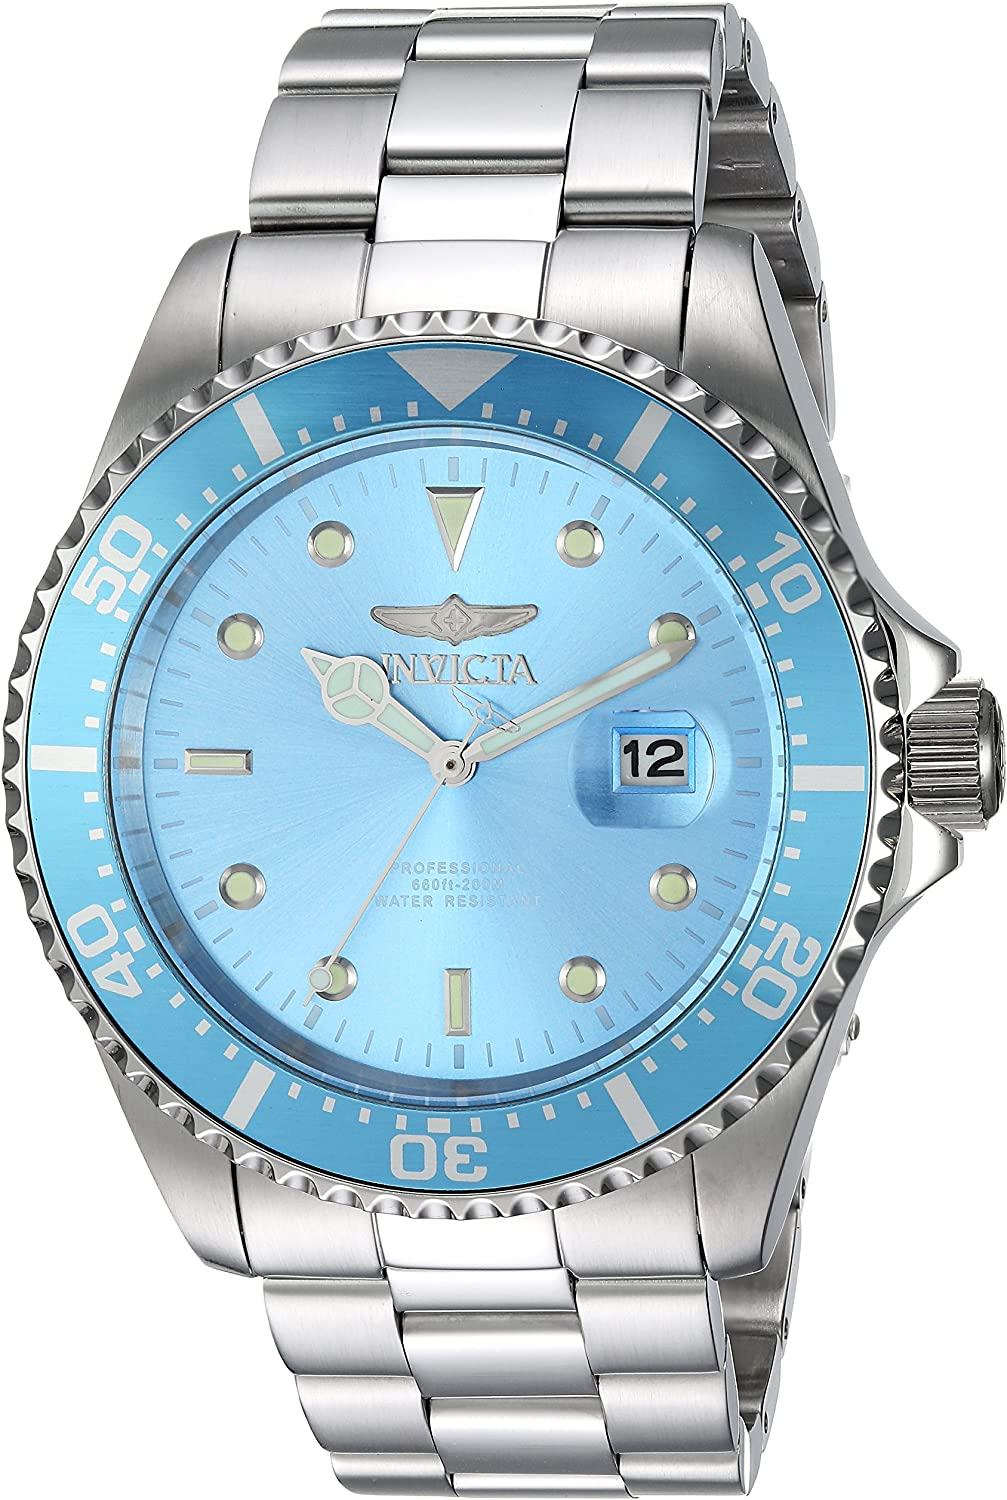 Invicta Men s Pro Diver Quartz Diving Watch with Stainless-Steel Strap, Silver, 14 Model 22051